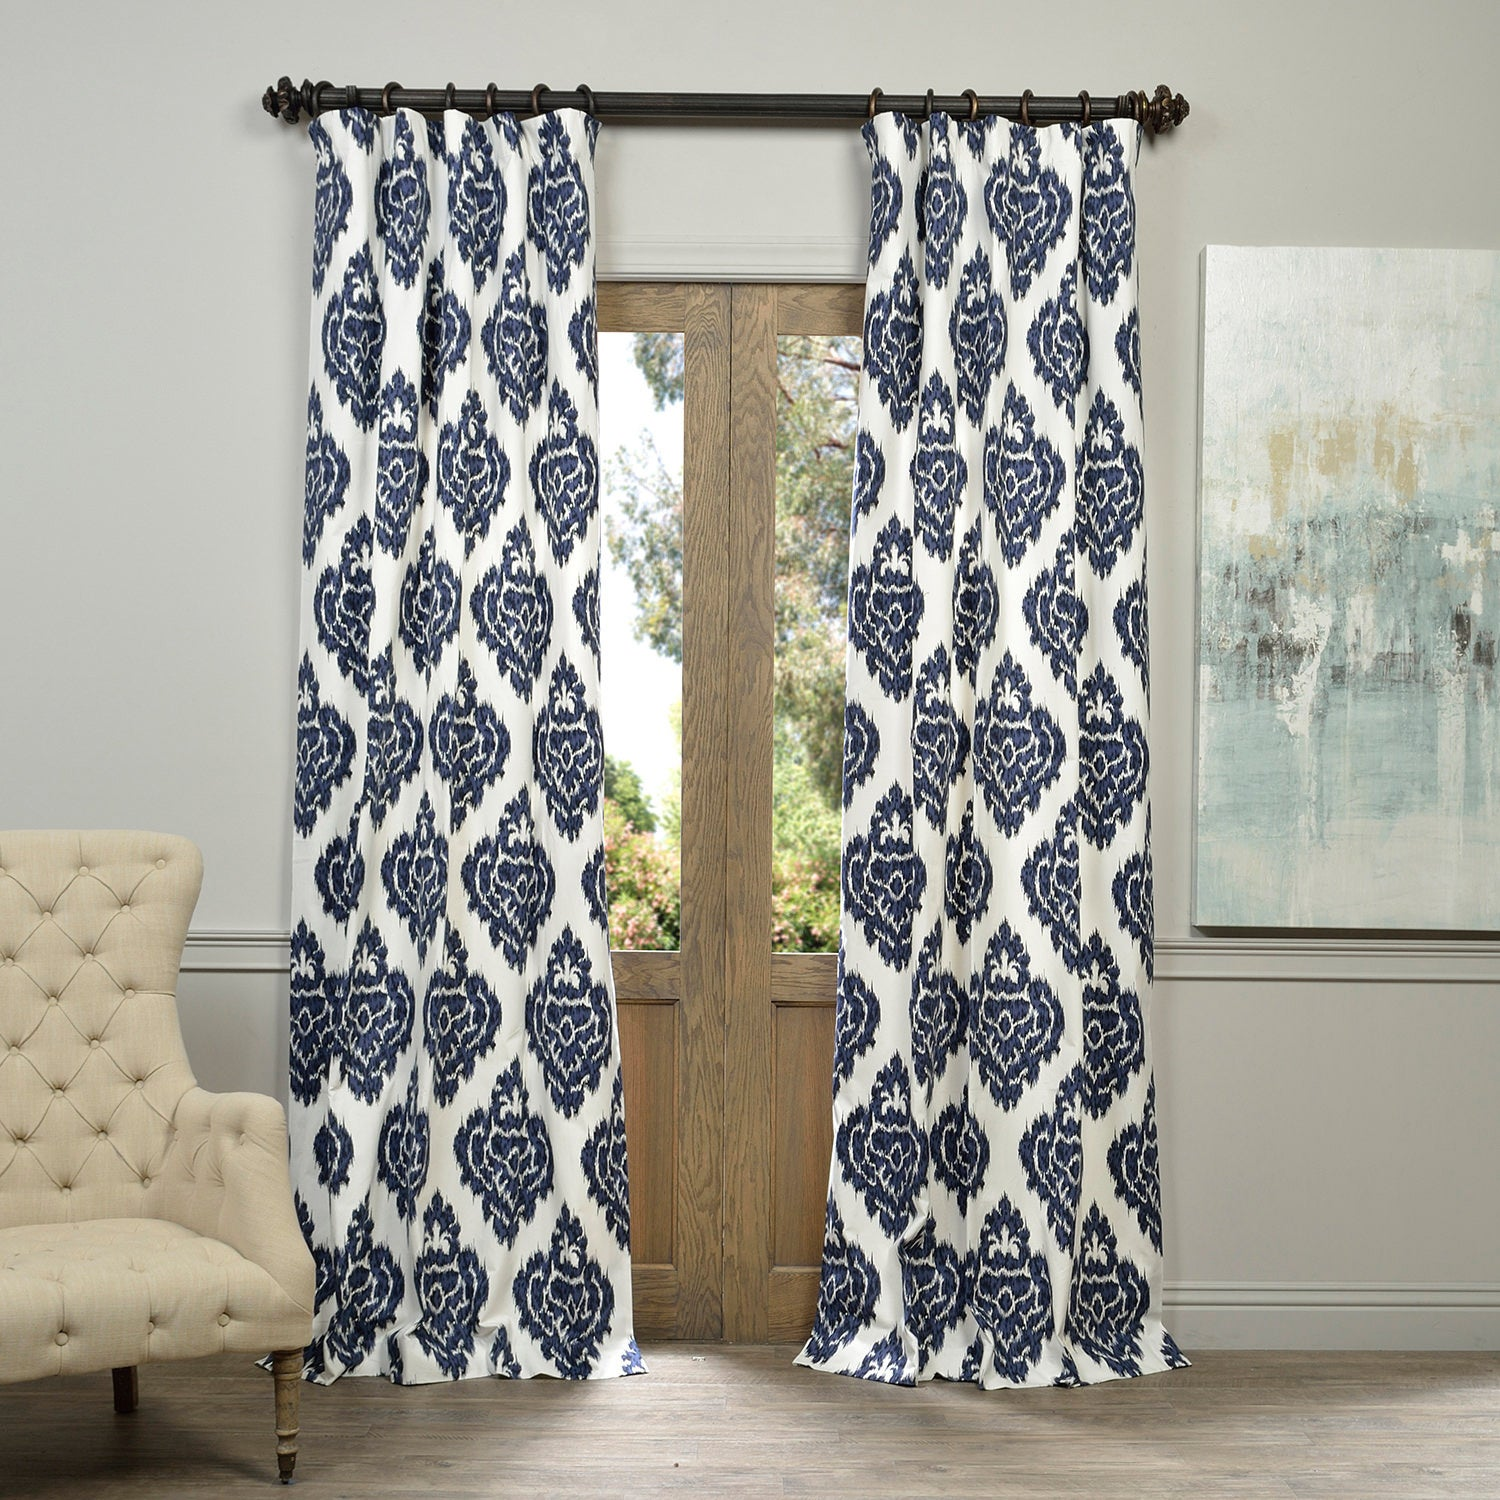 for blinds made iliv curtain product varenne floral to and from linen curtains essence embroidered measure collection fabric